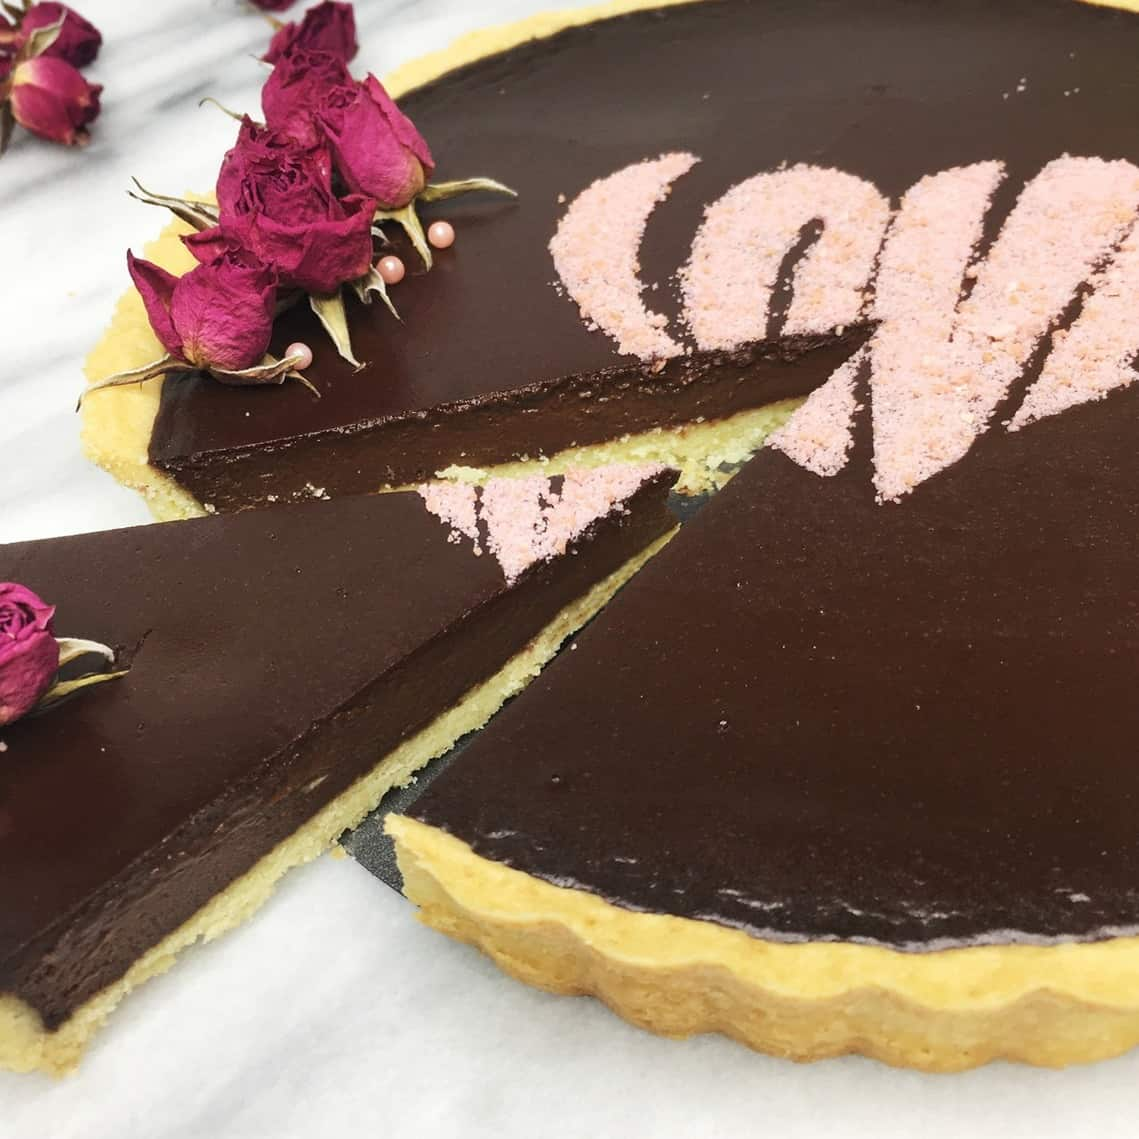 Sliced French chocolate tart decorated with dried rosebuds on a marble table